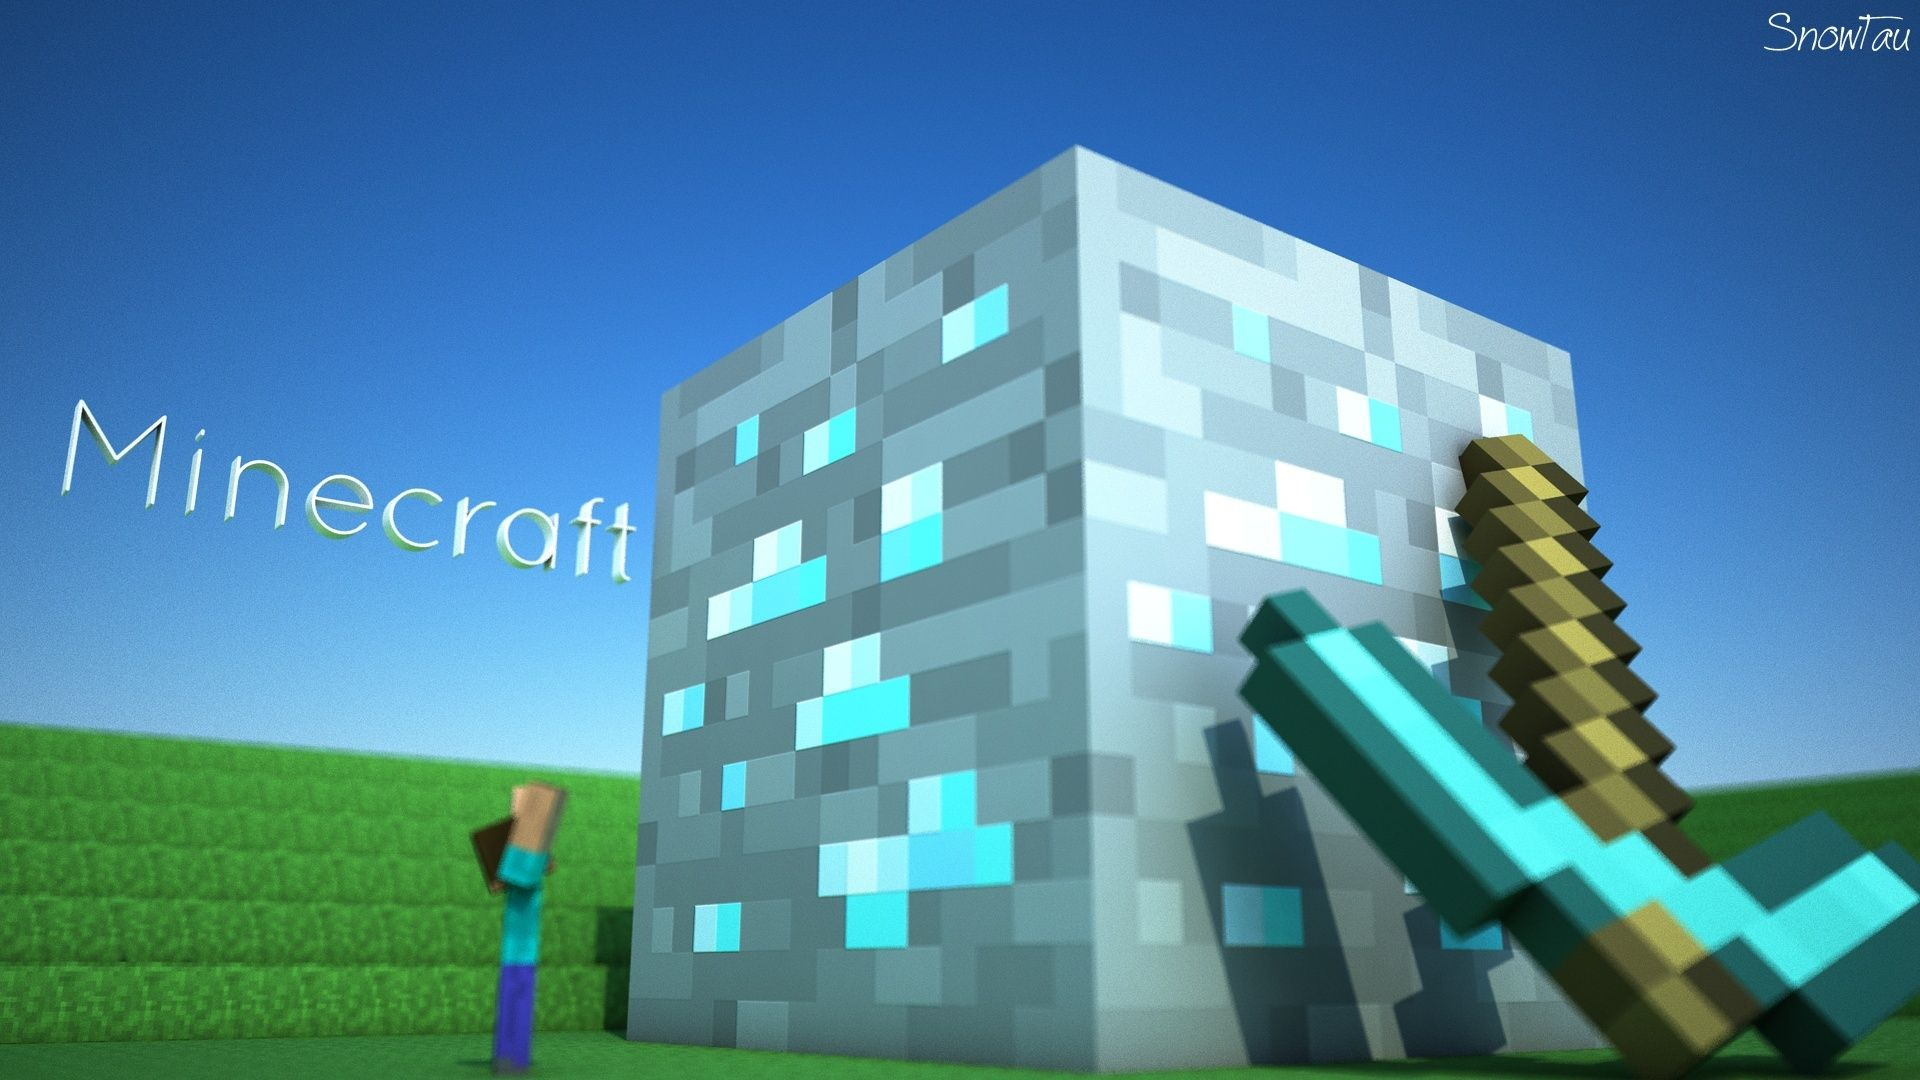 Free download Minecraft Wallpapers For Windows 7 15739 Hd ...